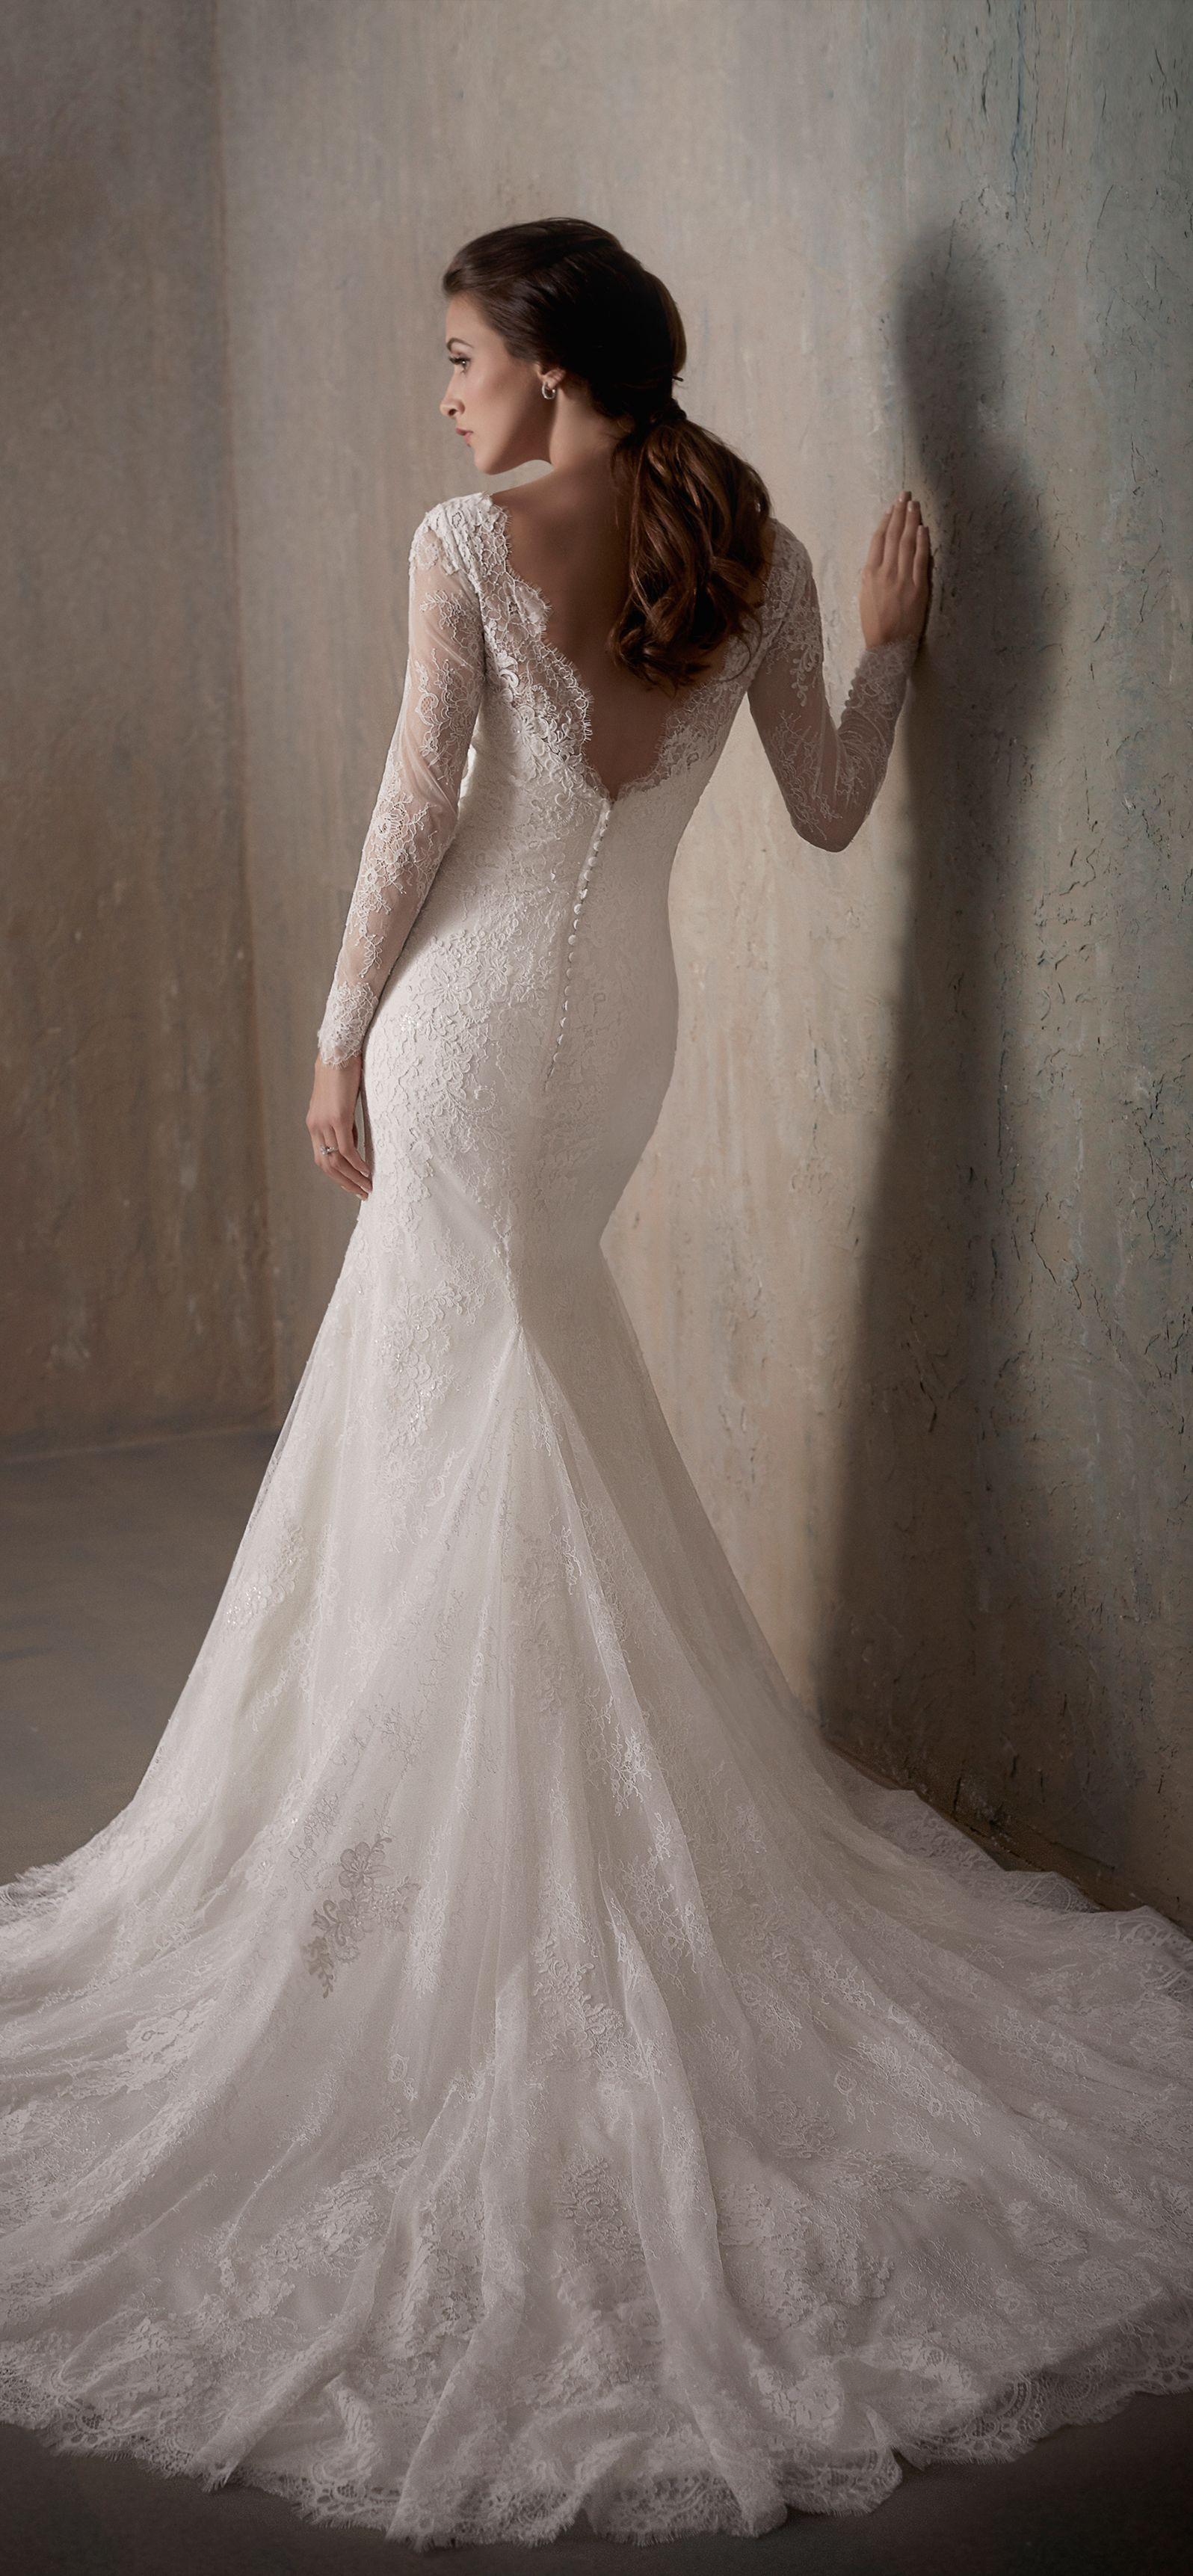 Backless long sleeve chantilly lace wedding dress with illusion